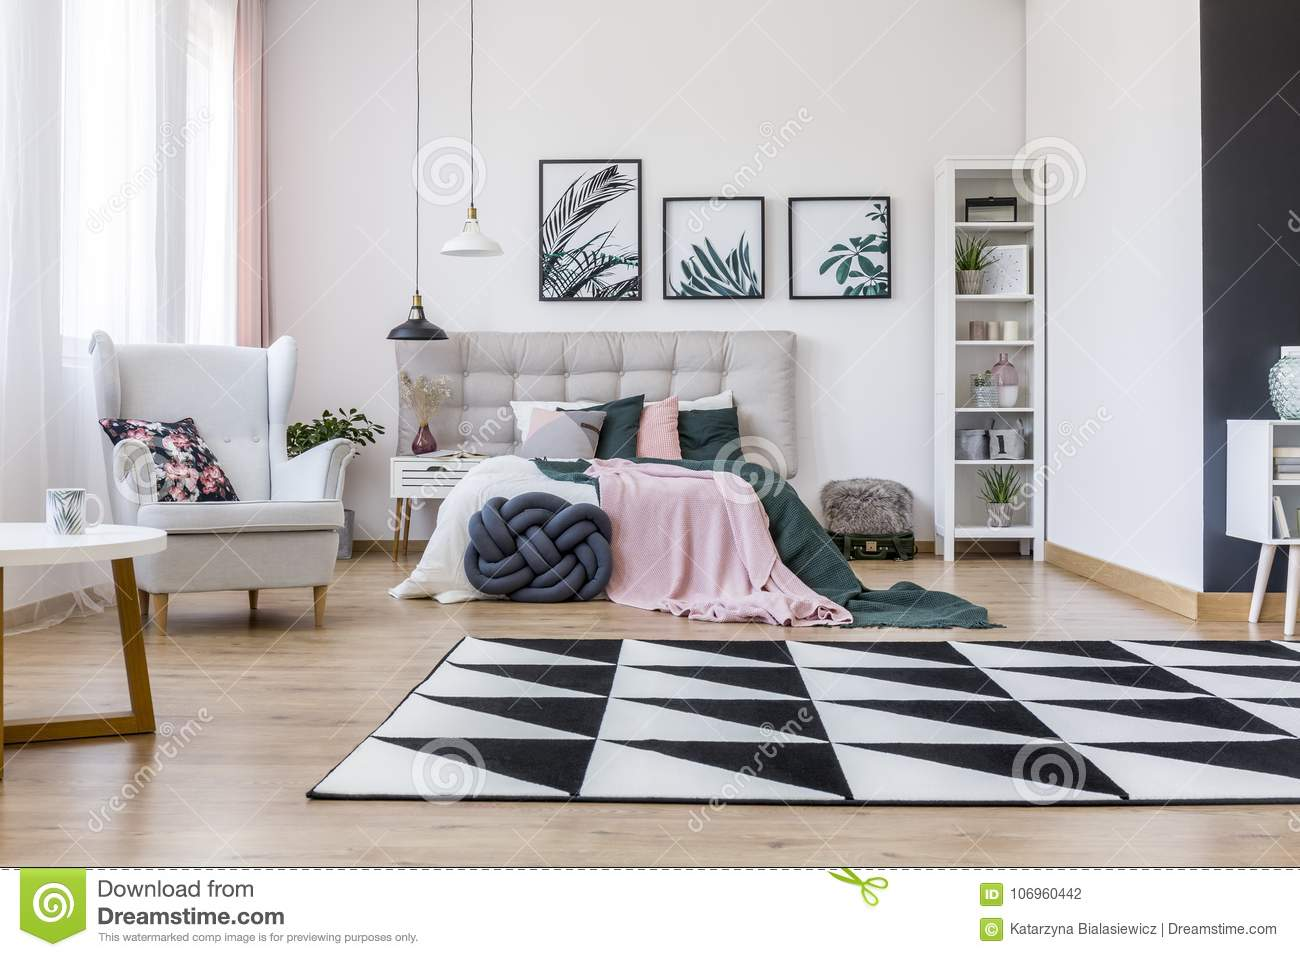 Pink and green bedroom stock photo. Image of bedroom - 106960442